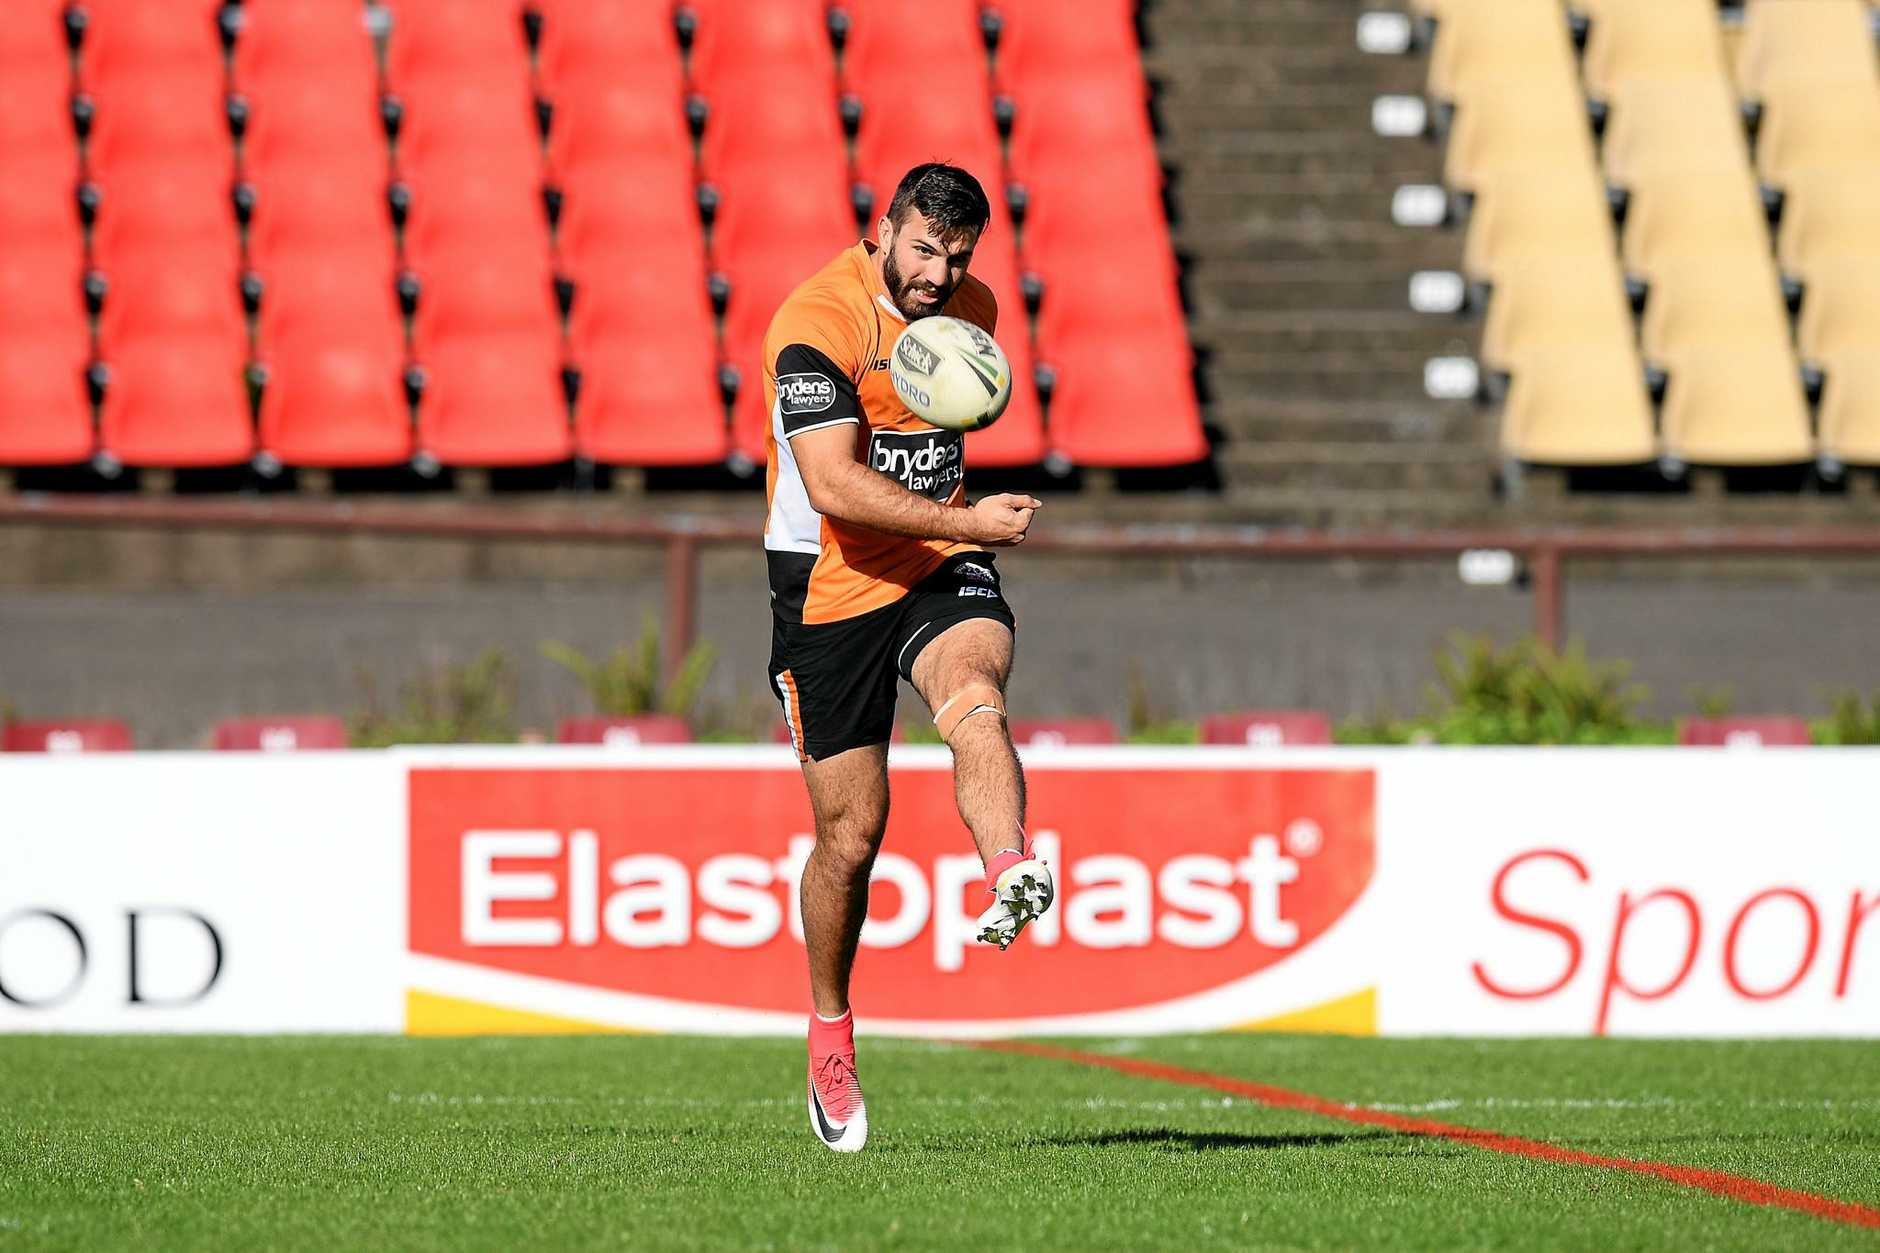 Wests Tigers player James Tedesco takes part in a training session at Concord Oval.